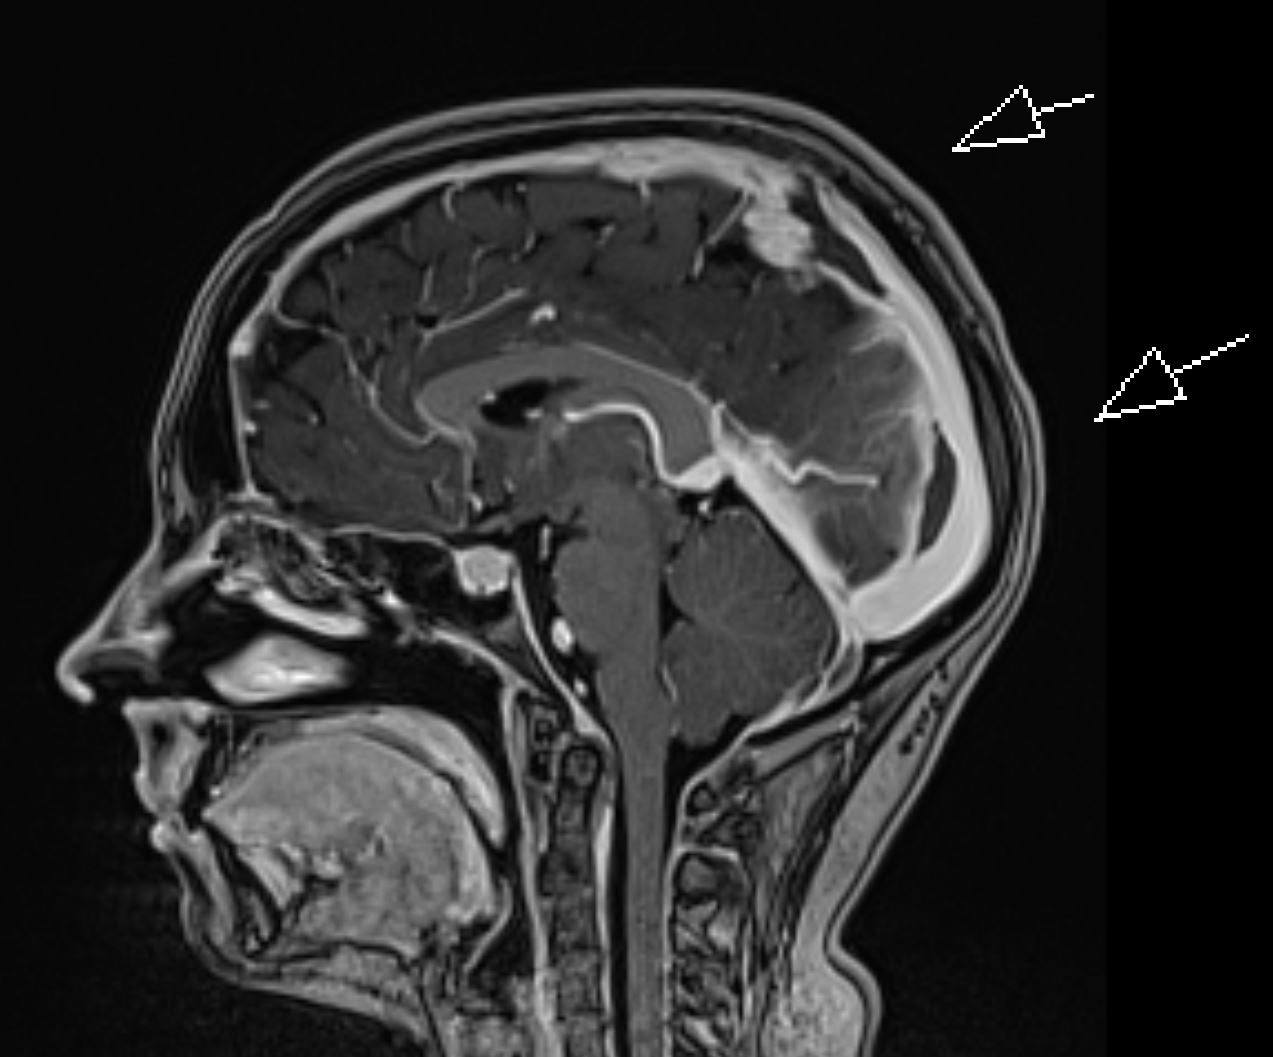 Radiology MRI: Intracranial Hypotension with Dural Sinus Thrombosis